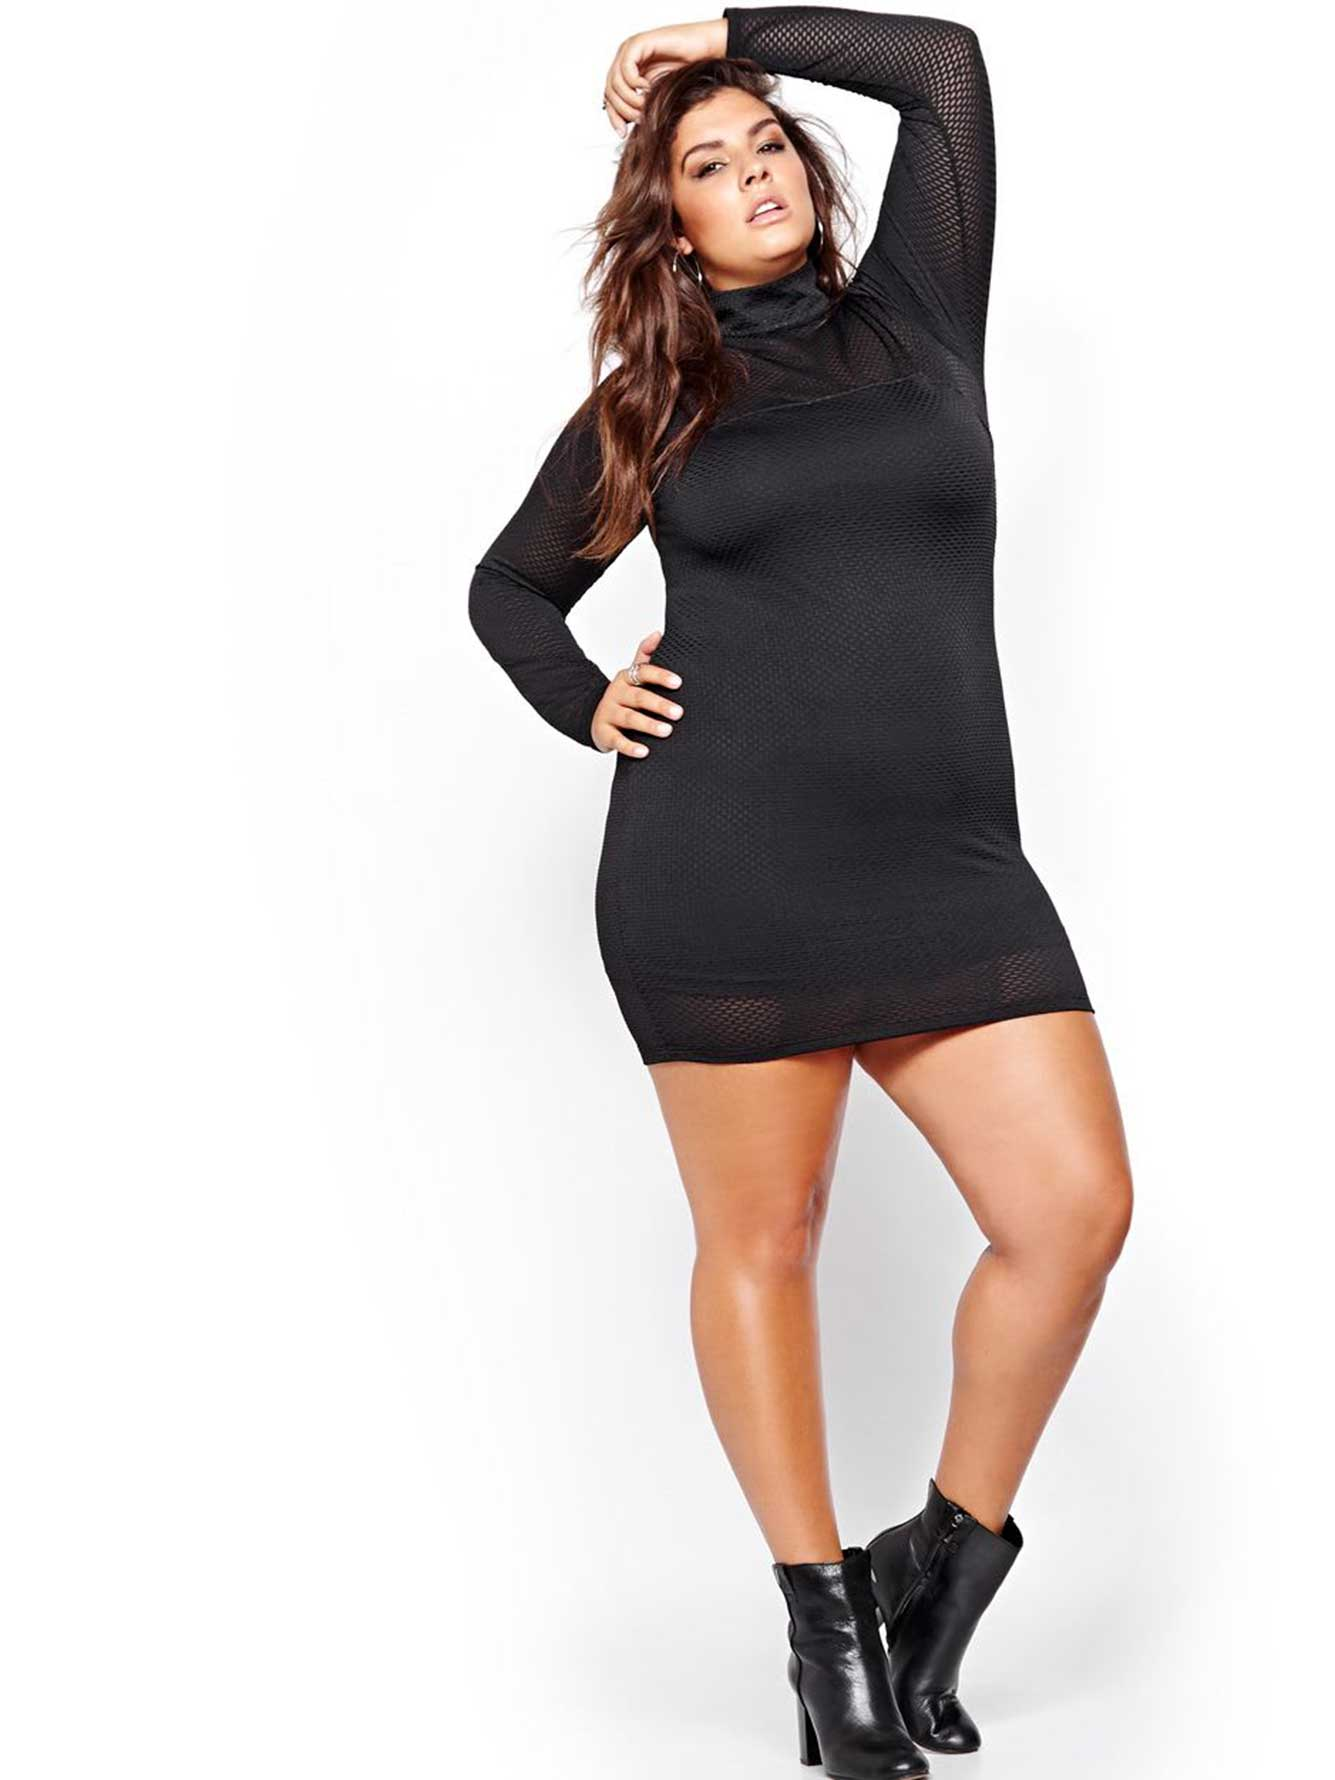 Nadia Aboulhosn Long Sleeve Mesh Dress for L&L